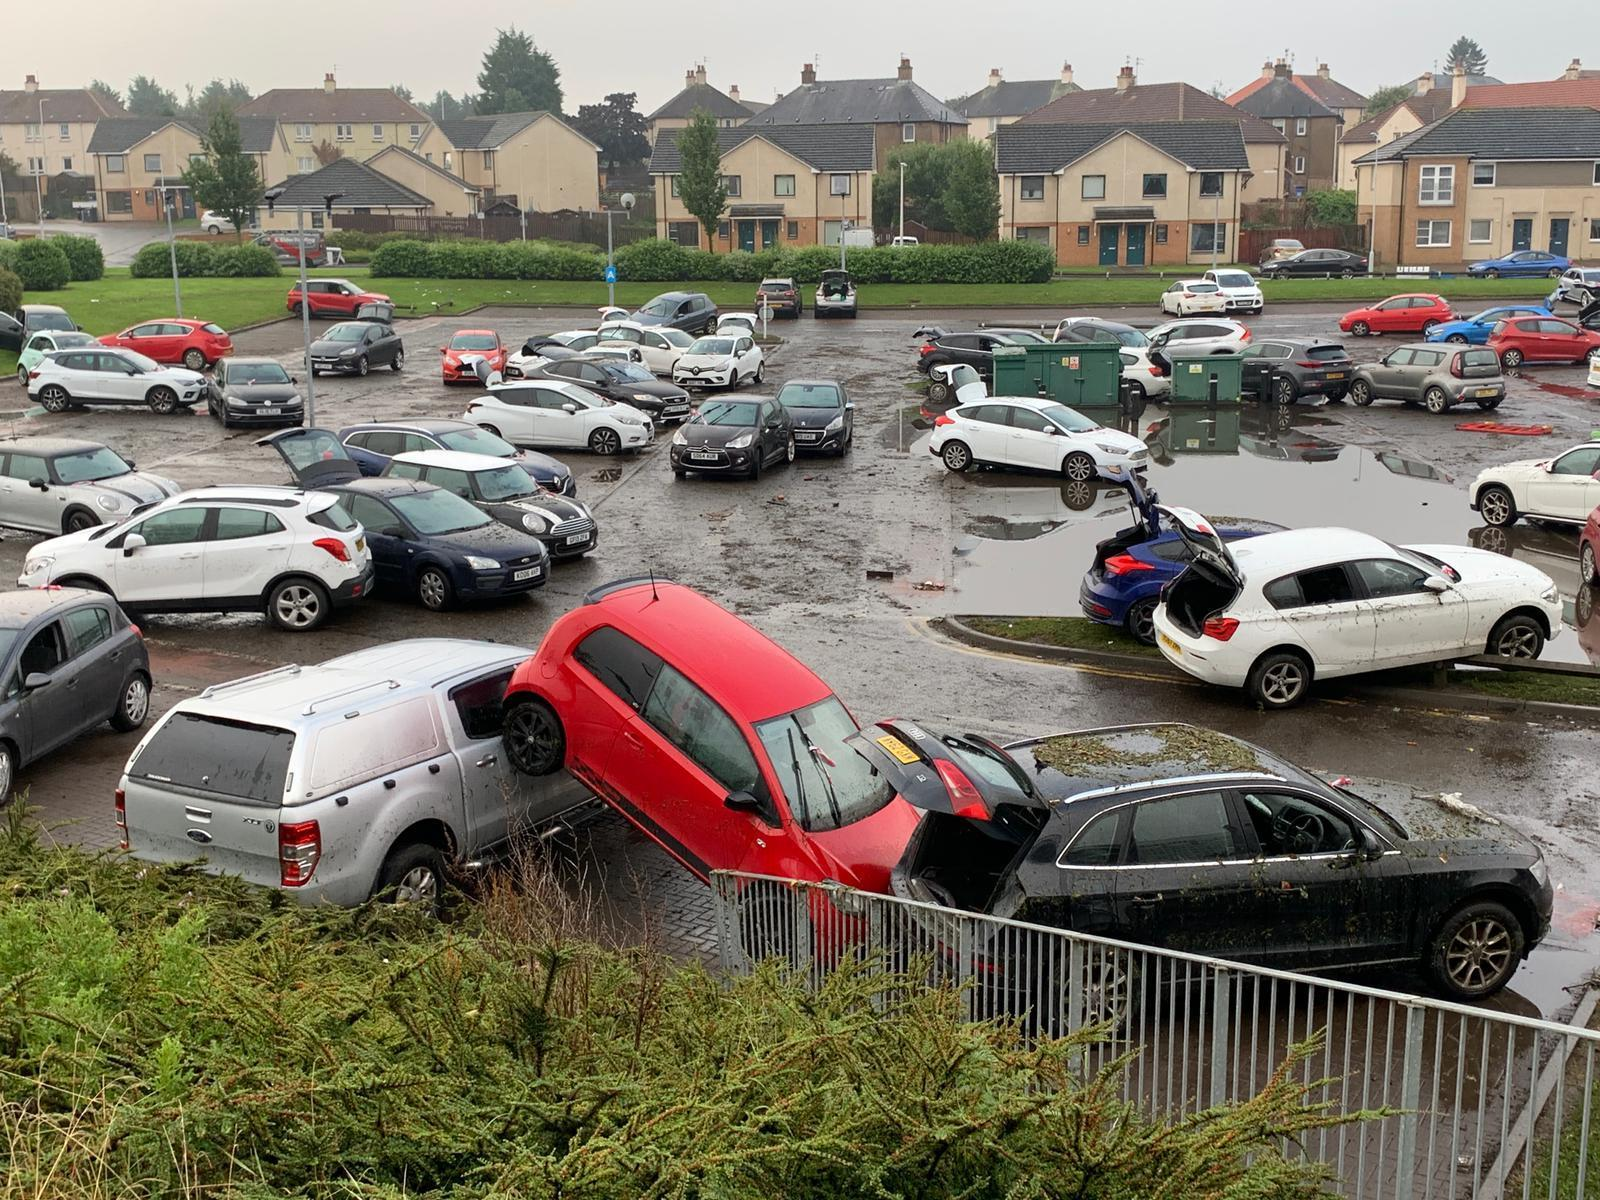 Cars have been written off in the Victoria Hospital car park, one of several incidents in Fife related to the weather.